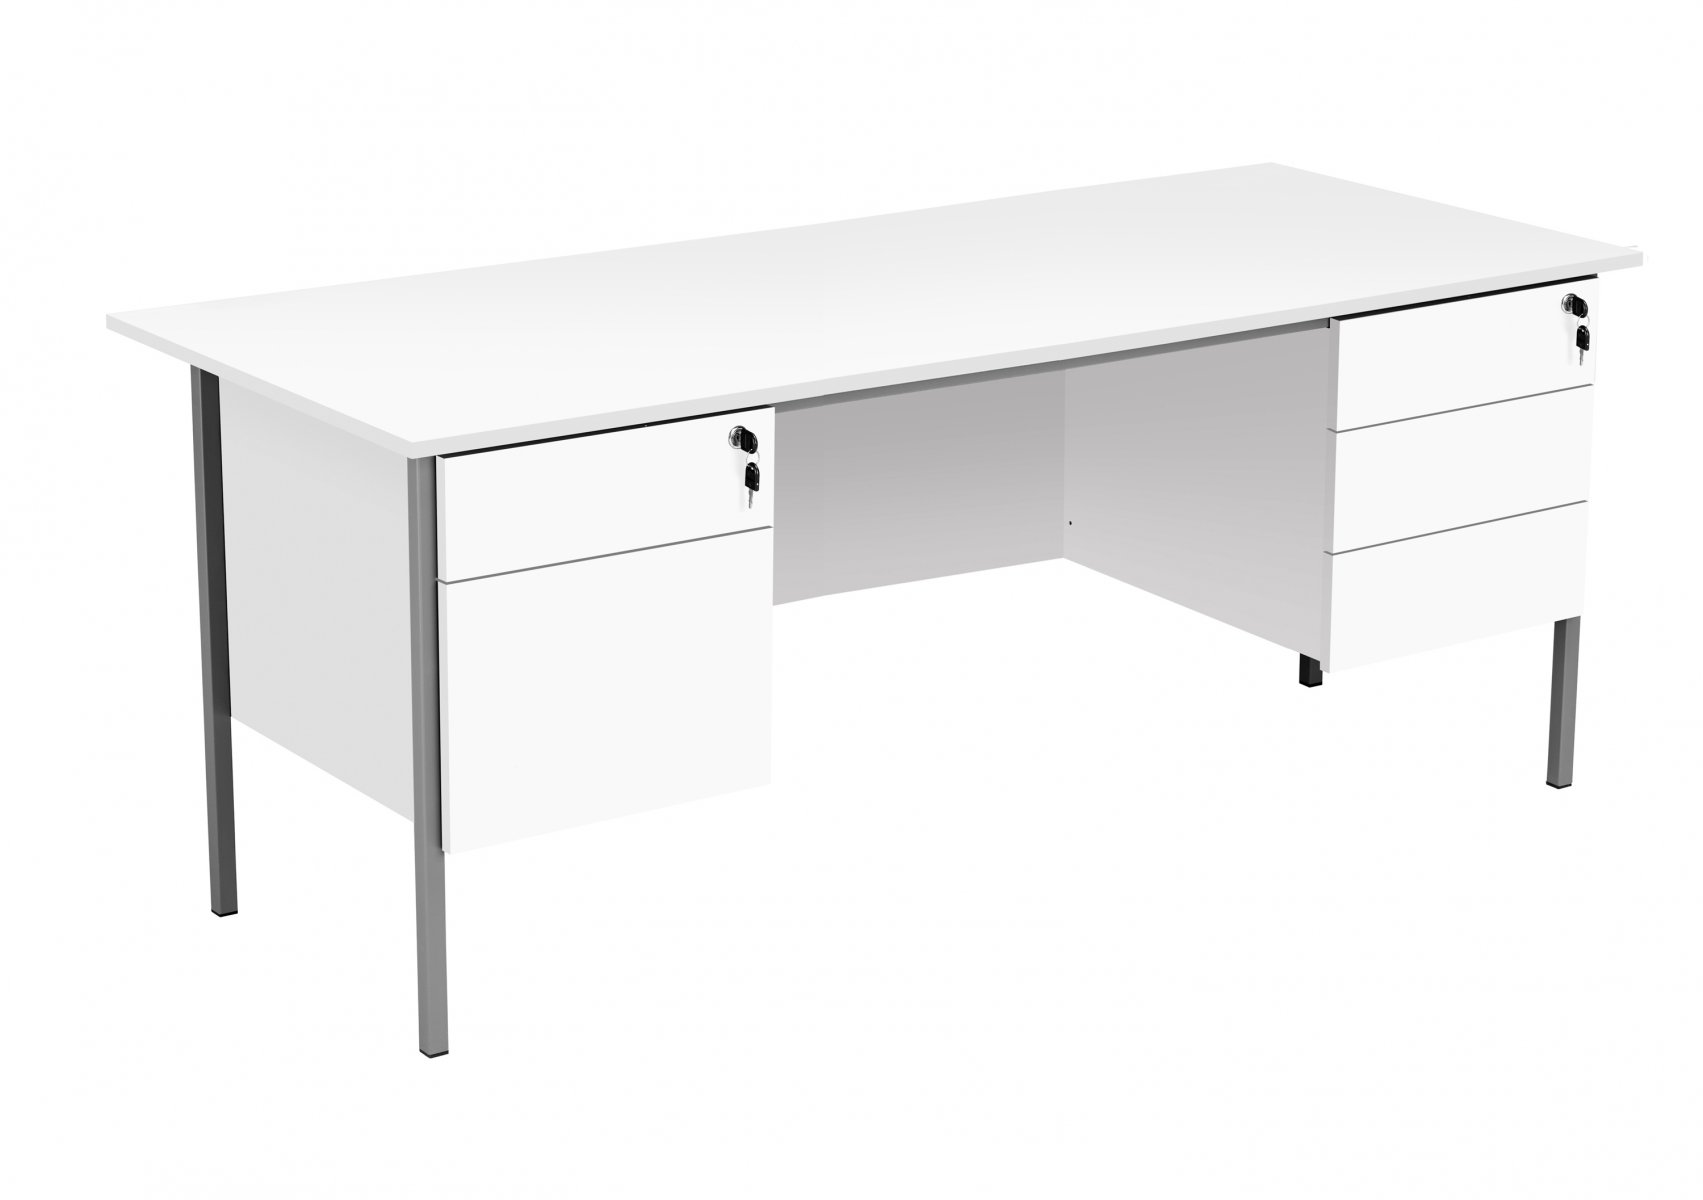 Eco 18 Rectangular 180 Desk with Double 2 and 3 Drawer Pedestals - White